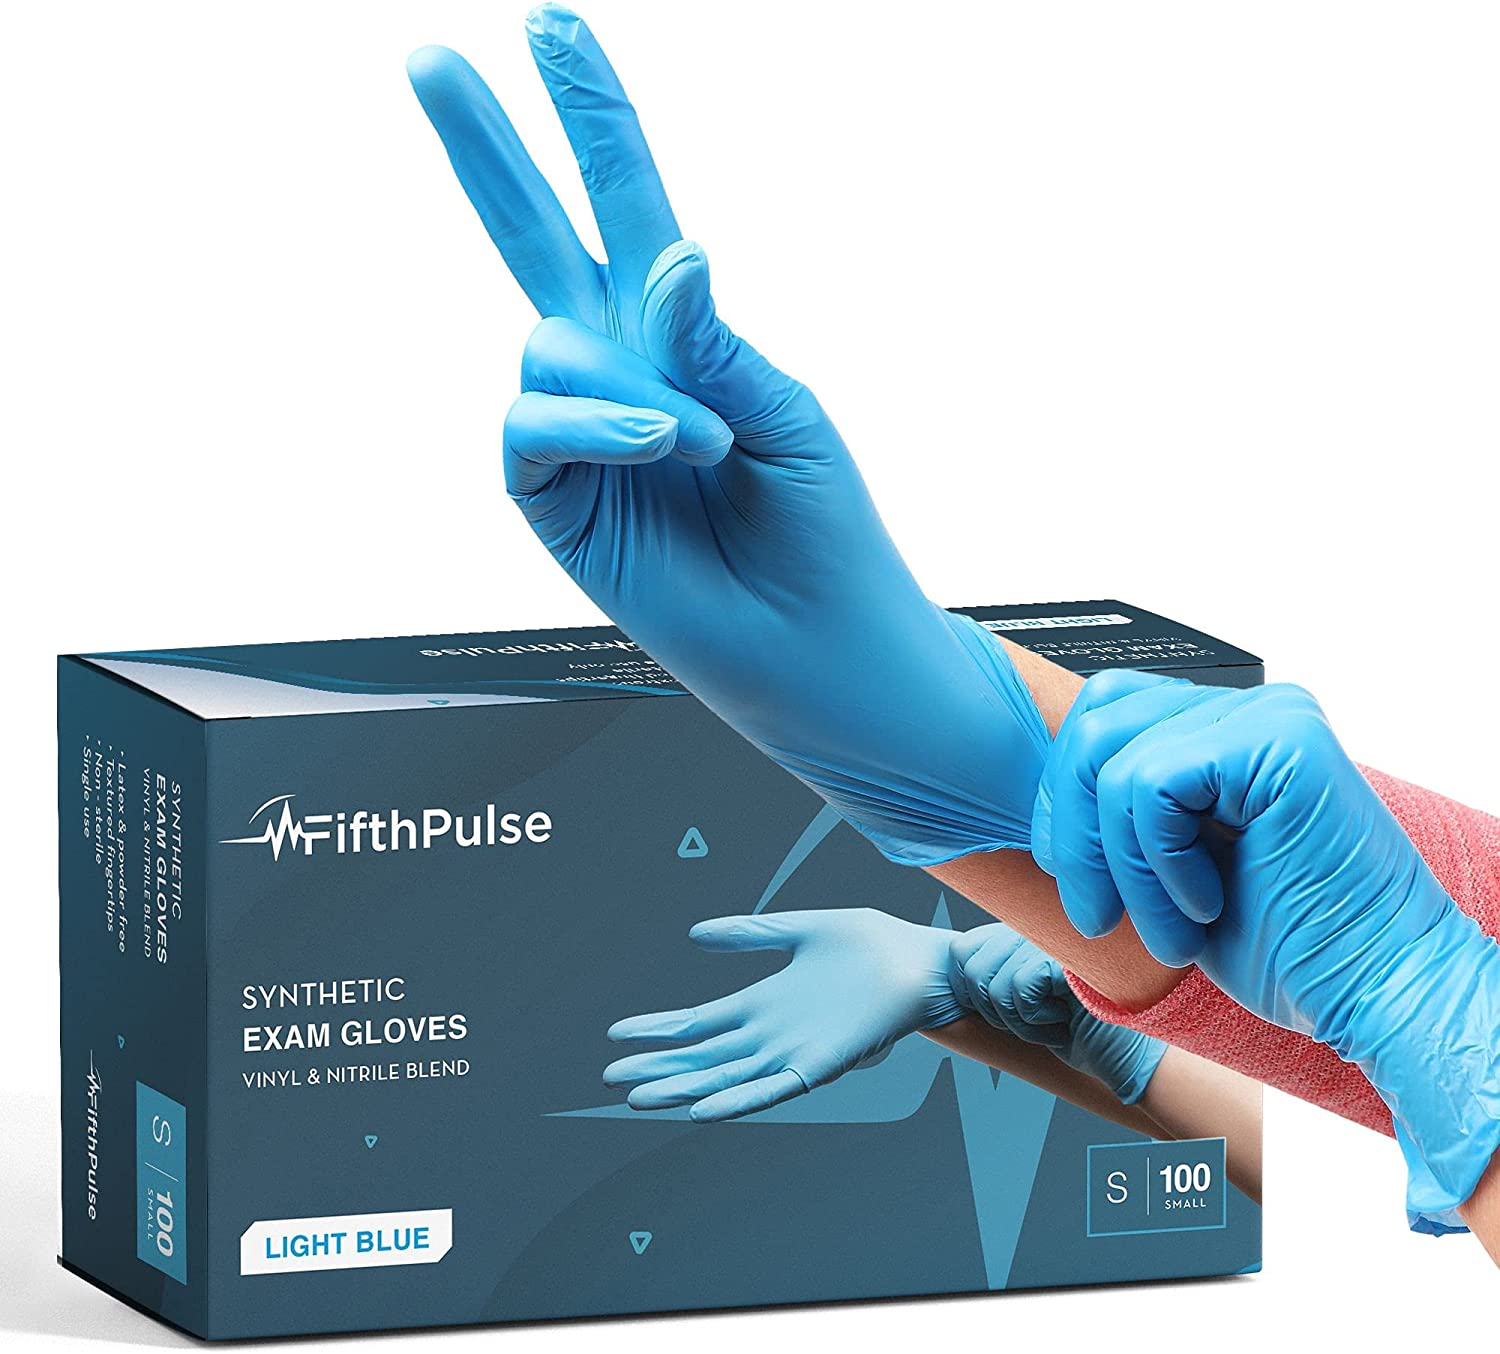 FifthPulse Blue Disposable Gloves Small 100 Count - Synthetic Nitrile Medical Exam Gloves - Latex Free, Powder Free - Surgical, Home, Cleaning, and Food Gloves - 3 Mil Thickness